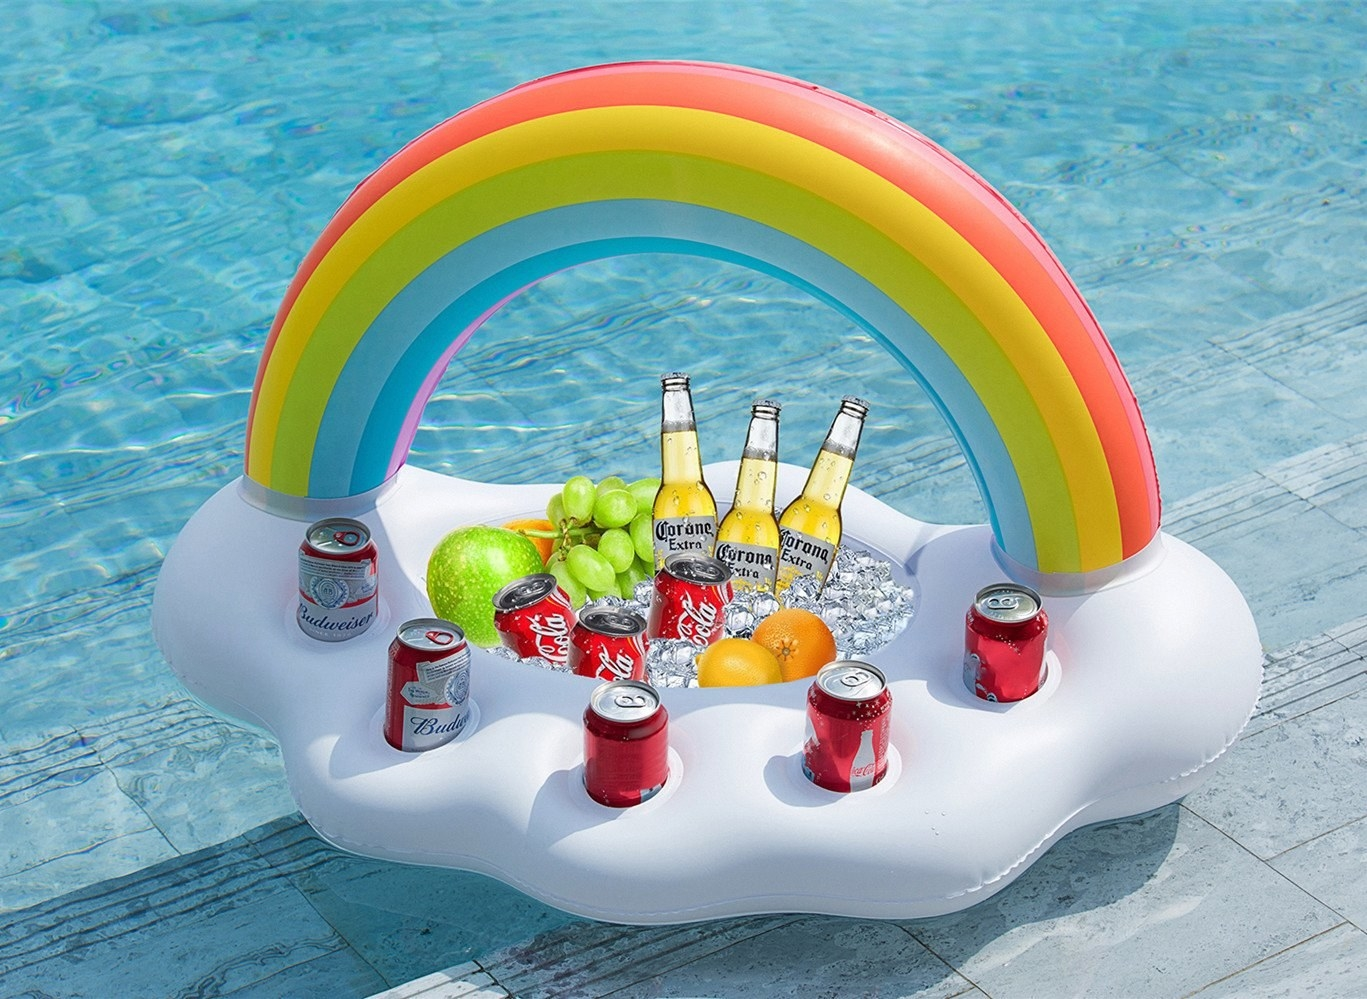 The float, which has a rainbow arch and a cloud base with a large basin which is filled with ice, fruit and drinks, plus five cupholders with cans in them